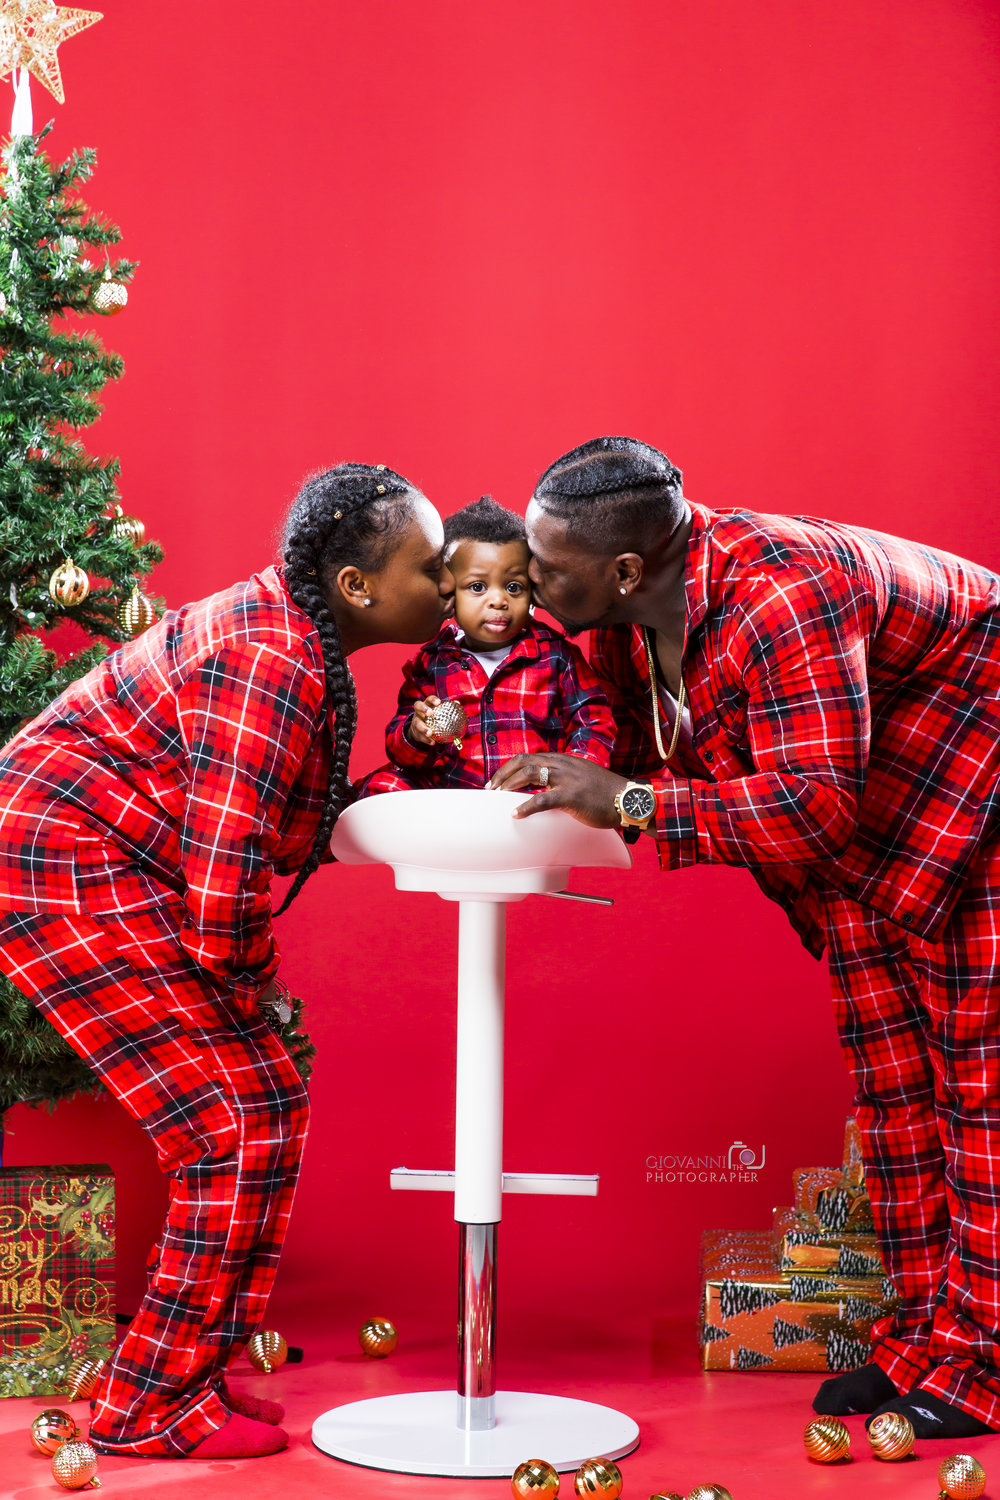 314A9723-12-16-18 - Sie - Chavin - Cannon - Christmas Photo Shoot - Boston Sudio Rental.jpg